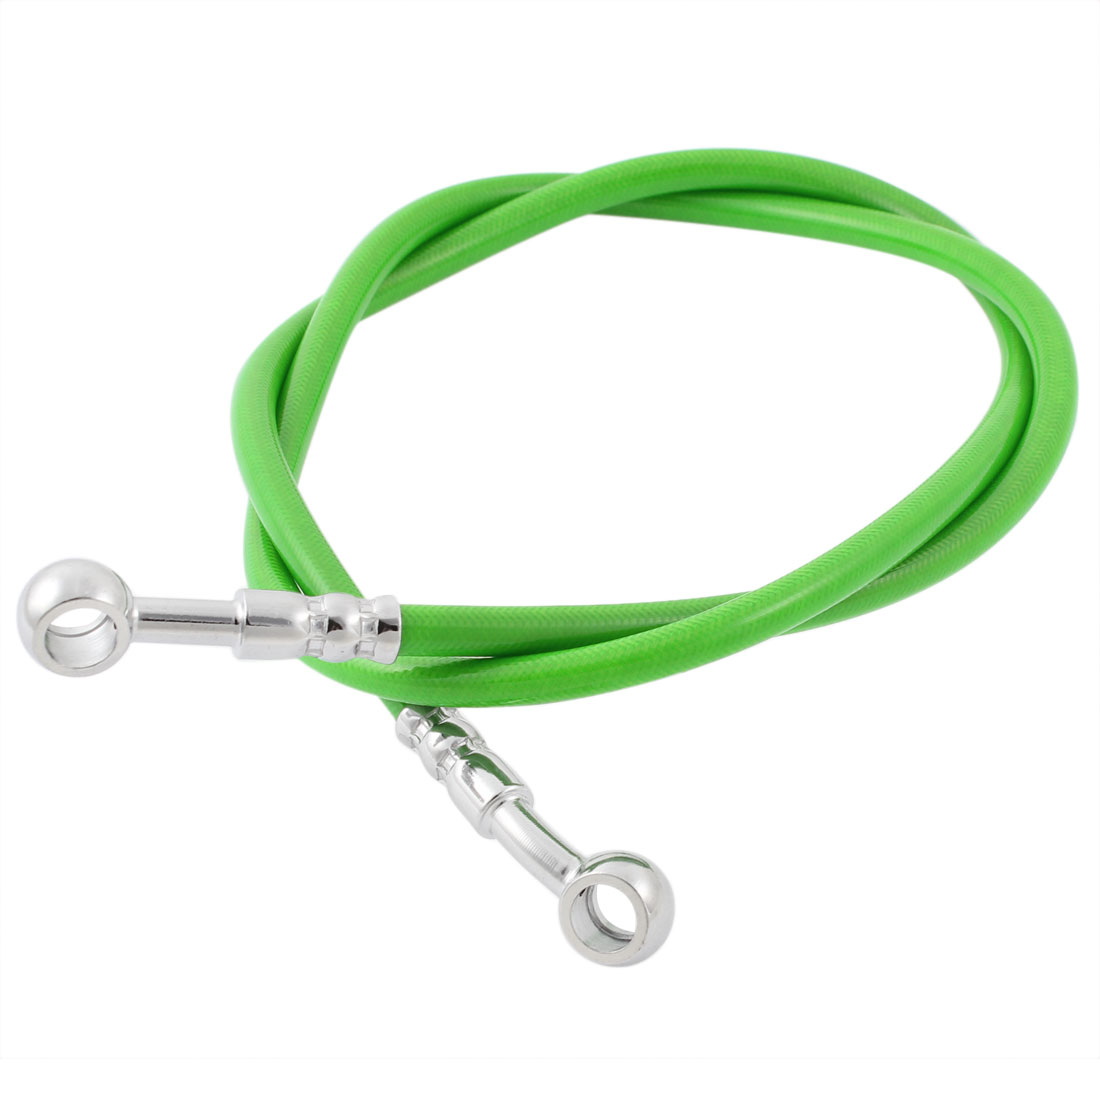 Motorcycle 100cm Length Rubber Stainless Steel Brake Line Green